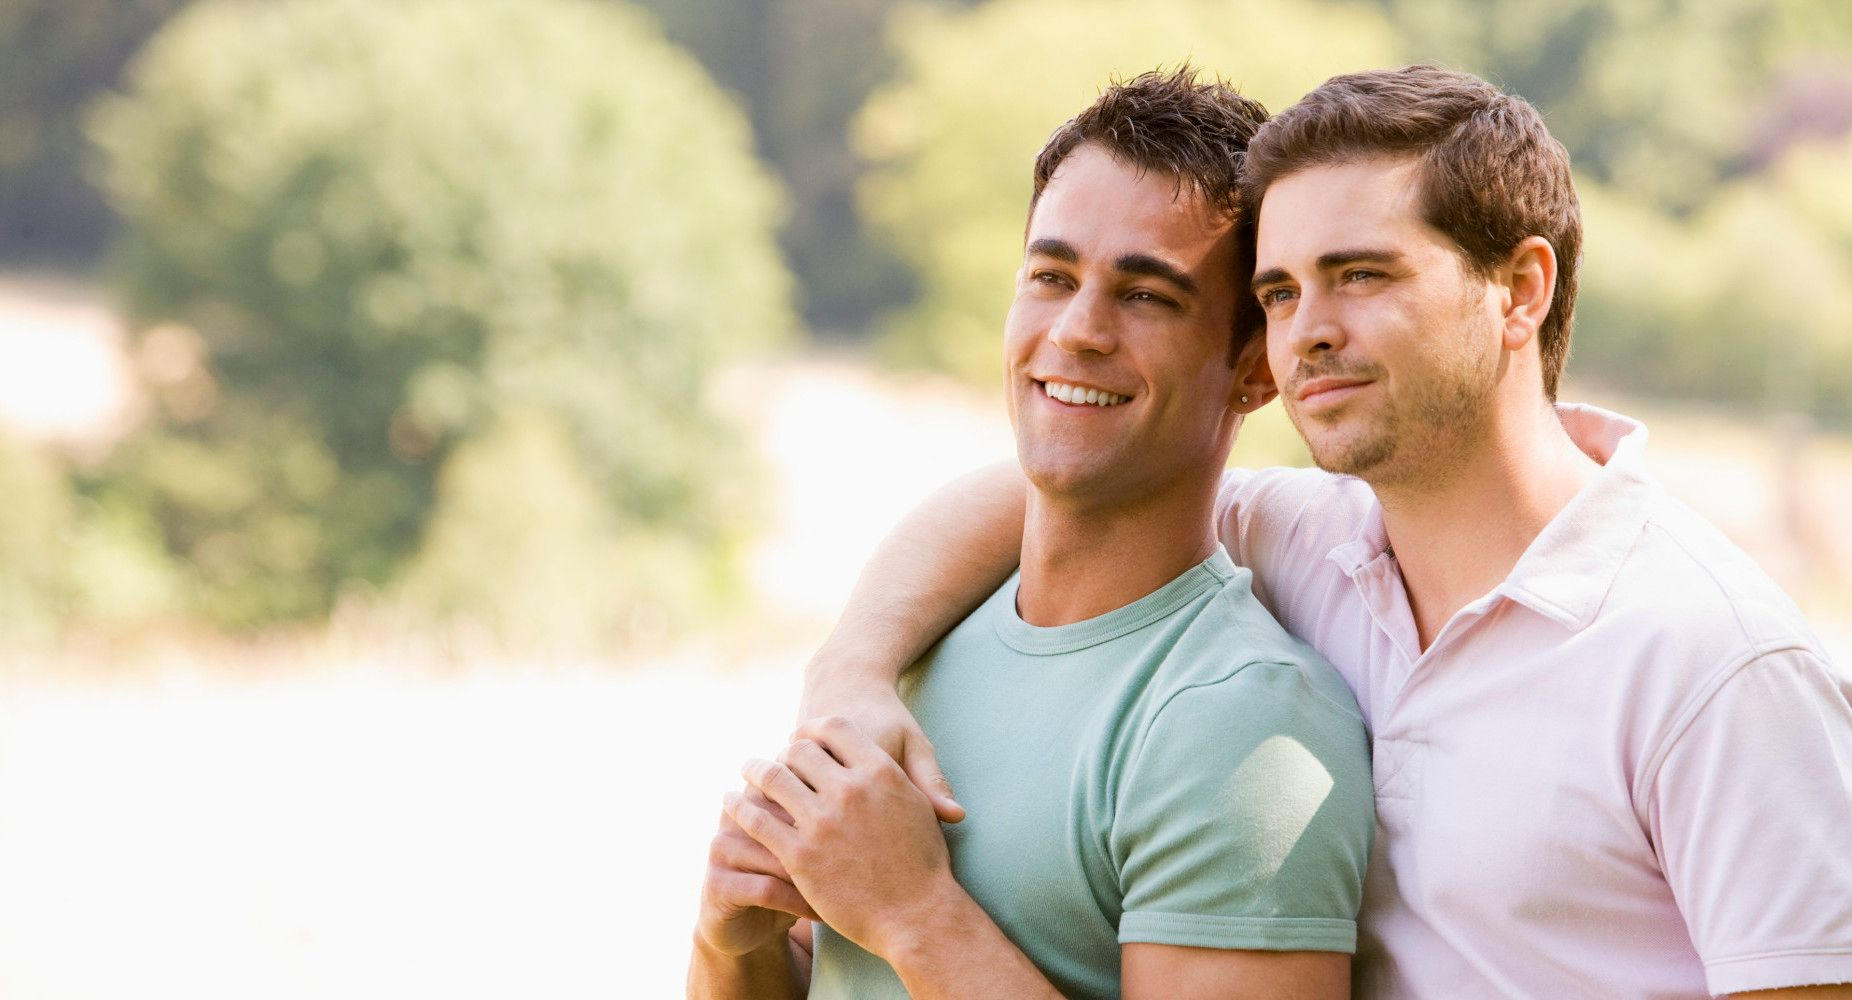 Gay Hookup Advice Second Date